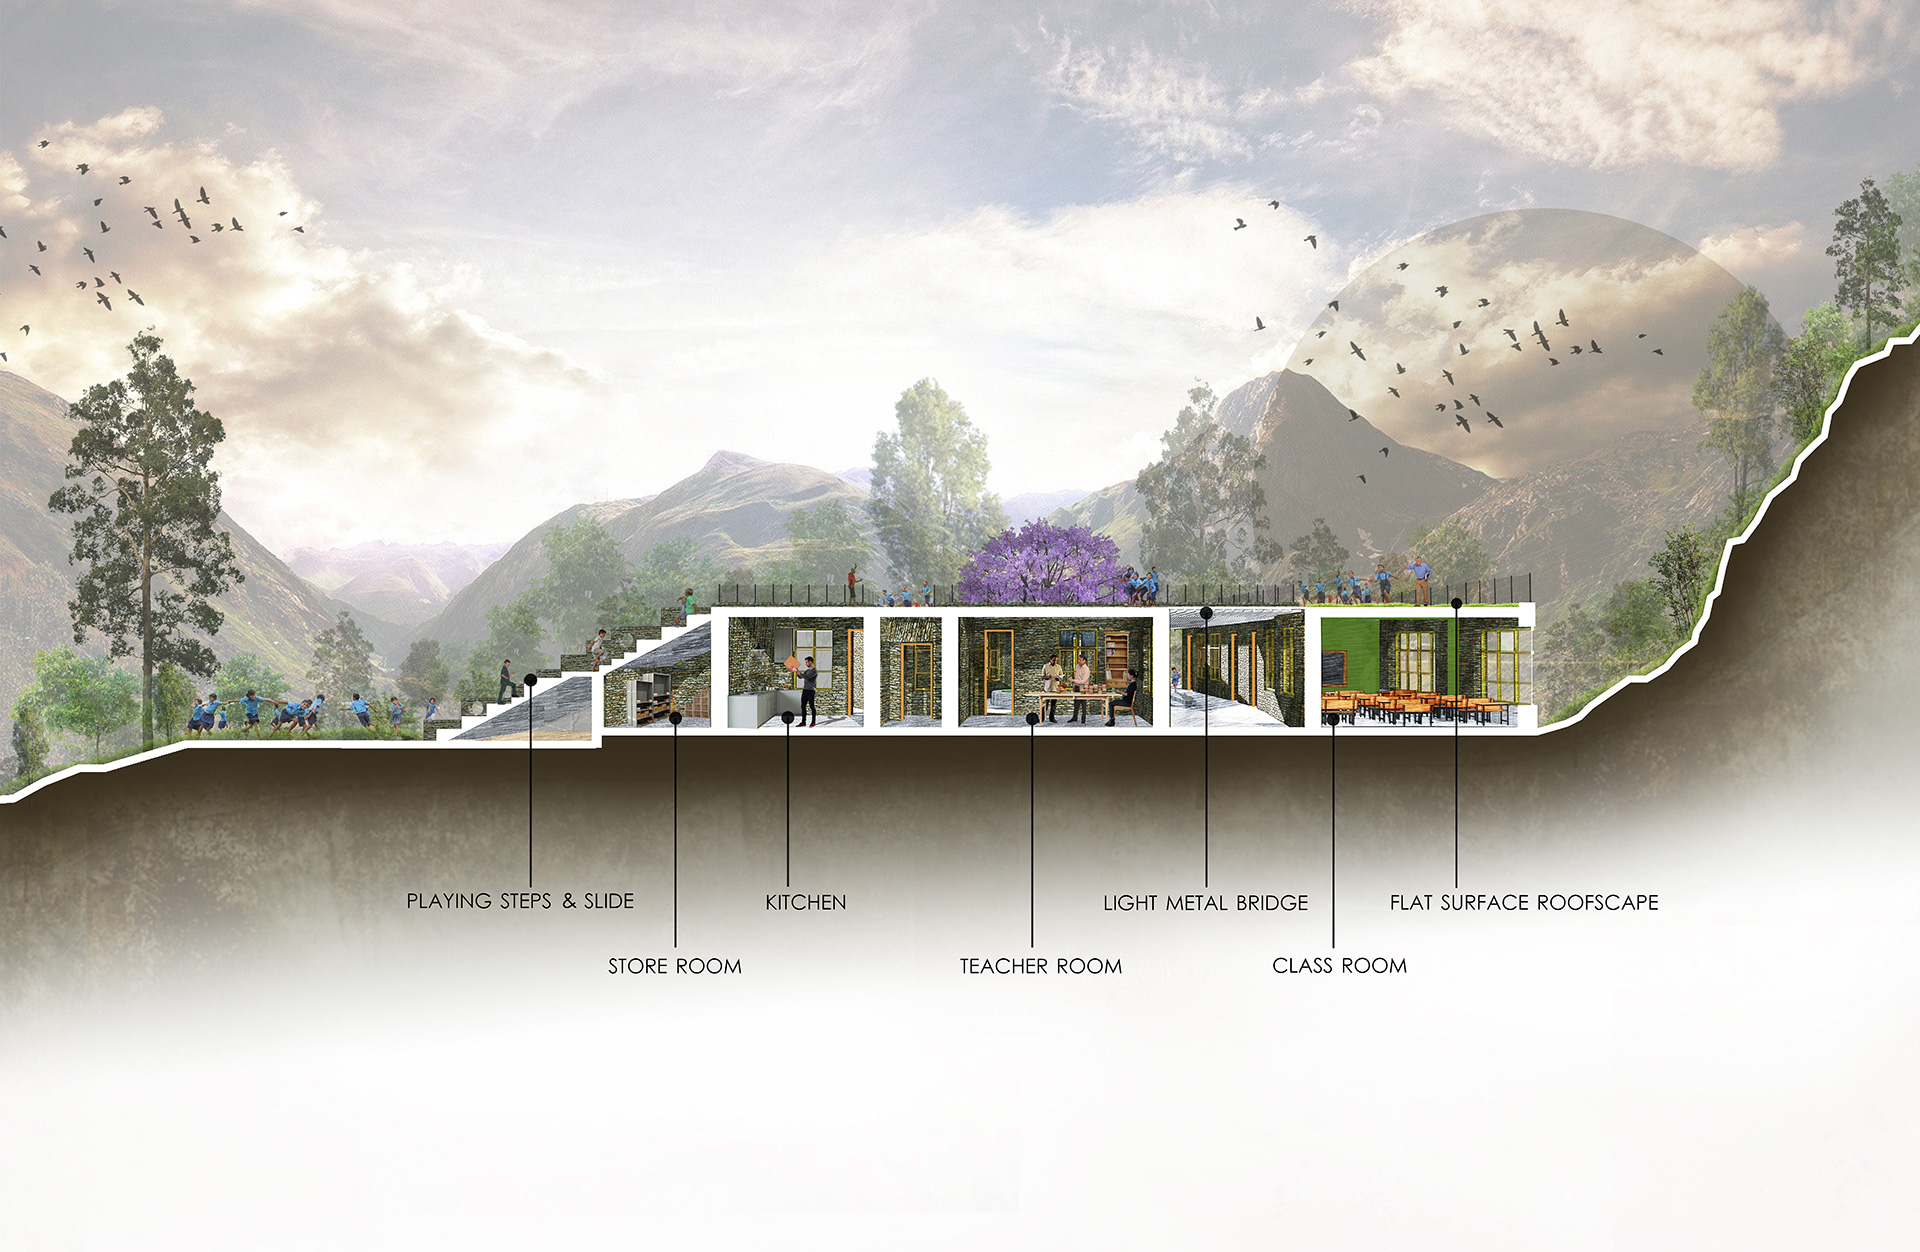 Sectional perspective of the Shree Janasewa School by Sustainable Mountain Architecture led by Prof. Anne Feenstra | Anne Feenstra | Design after COVID-19| STIRworld